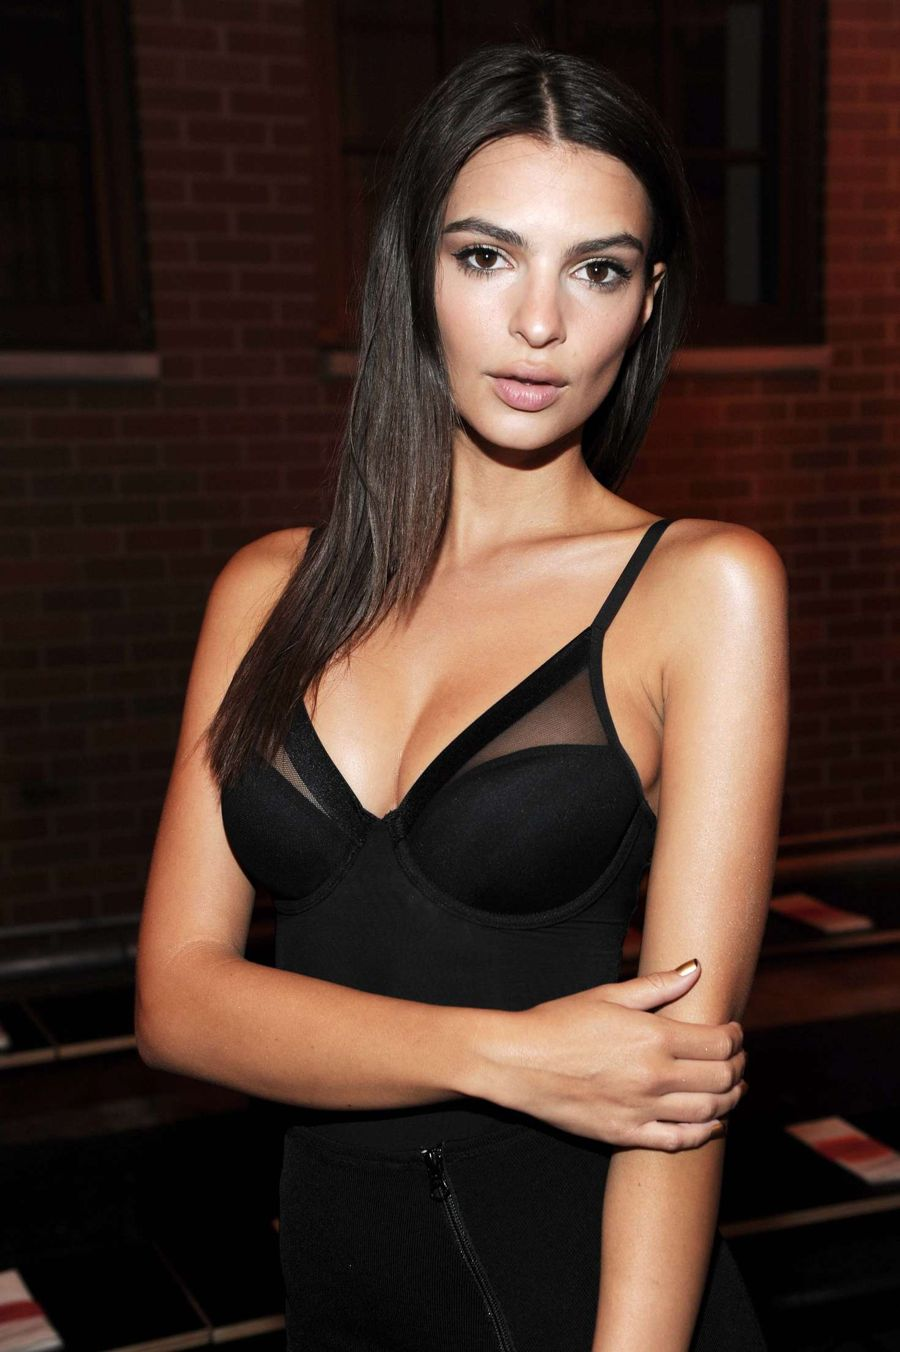 Emily Ratajkowski - D K N Y's SS 2017 Show in New York City